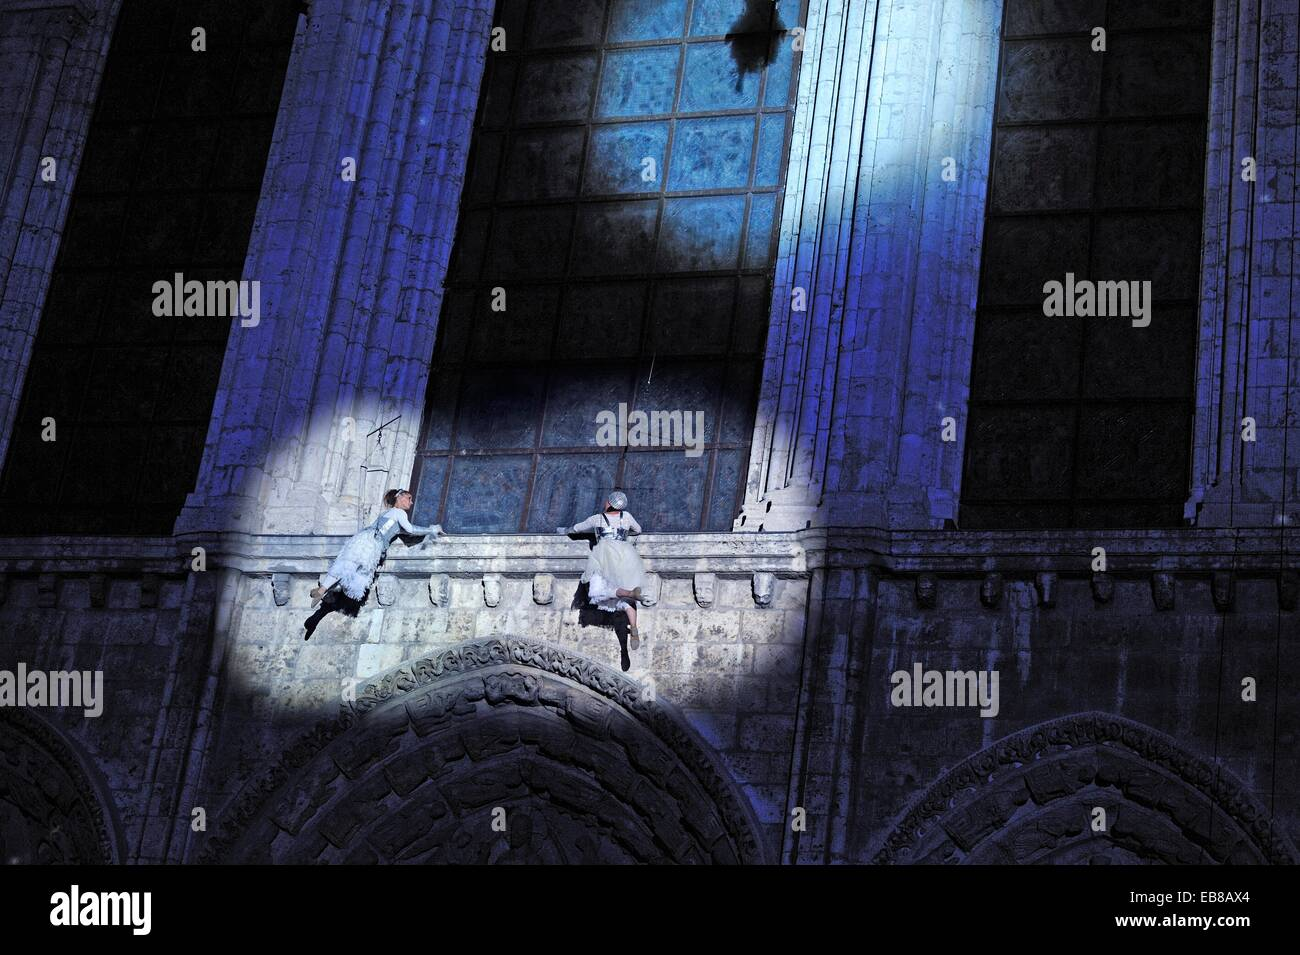 acrobatic and poetic dance show on the Royal portal by the Motus Modules Company illumination on the west facade - Stock Image